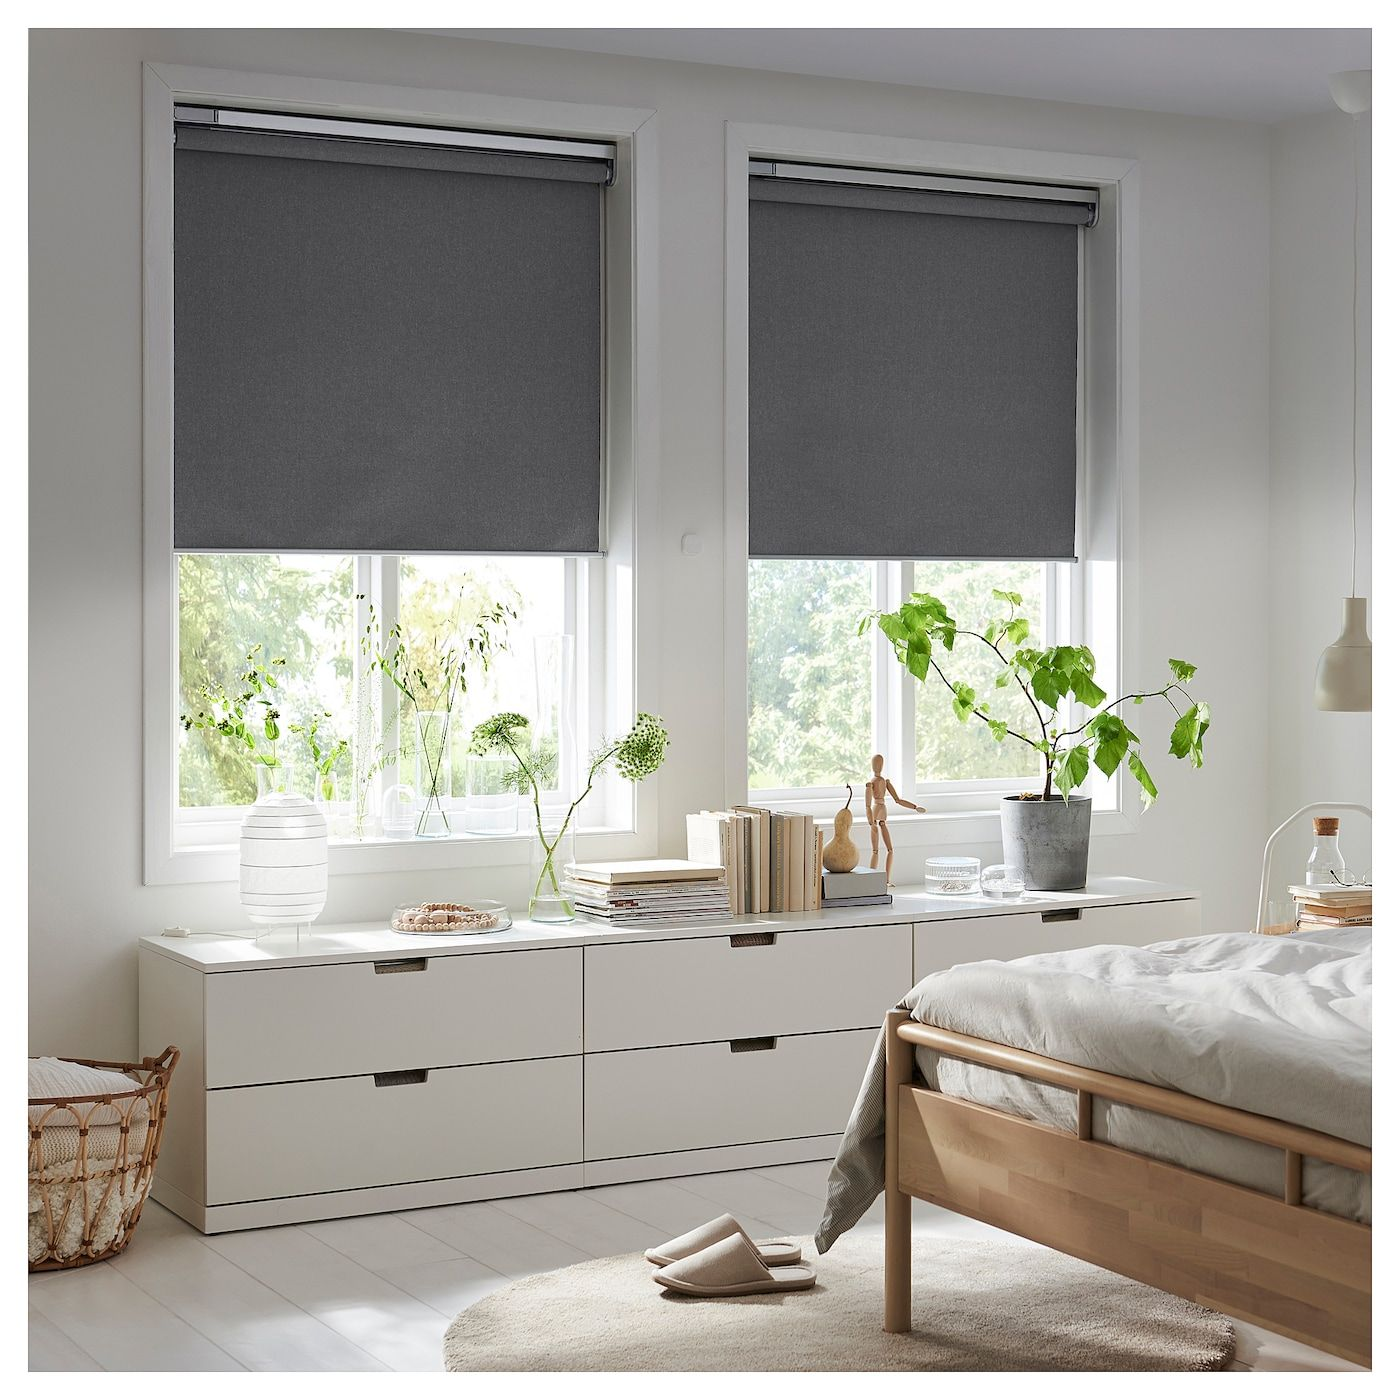 Fyrtur Blackout Roller Blind Wireless Battery Operated Gray Canada En Ikea Ikea Zuhause Elektrische Jalousien Fensterrollos